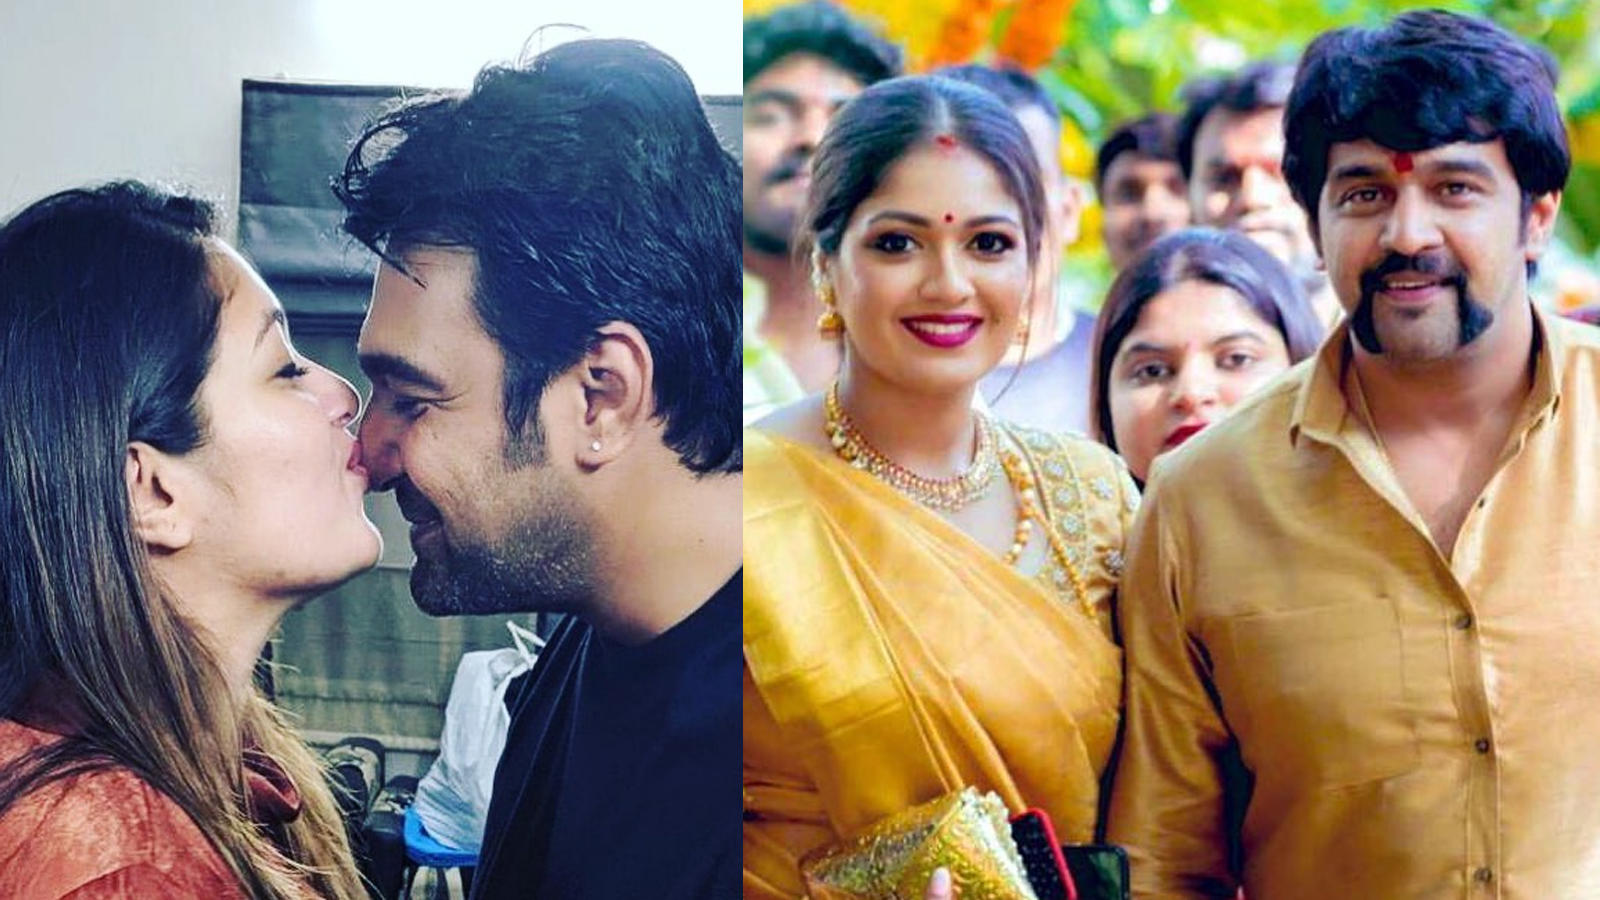 Late Kannada Actor Chiranjeevi Sarja S Wife Meghna Raj Is Expecting Their First Child Kannada Movie News Times Of India